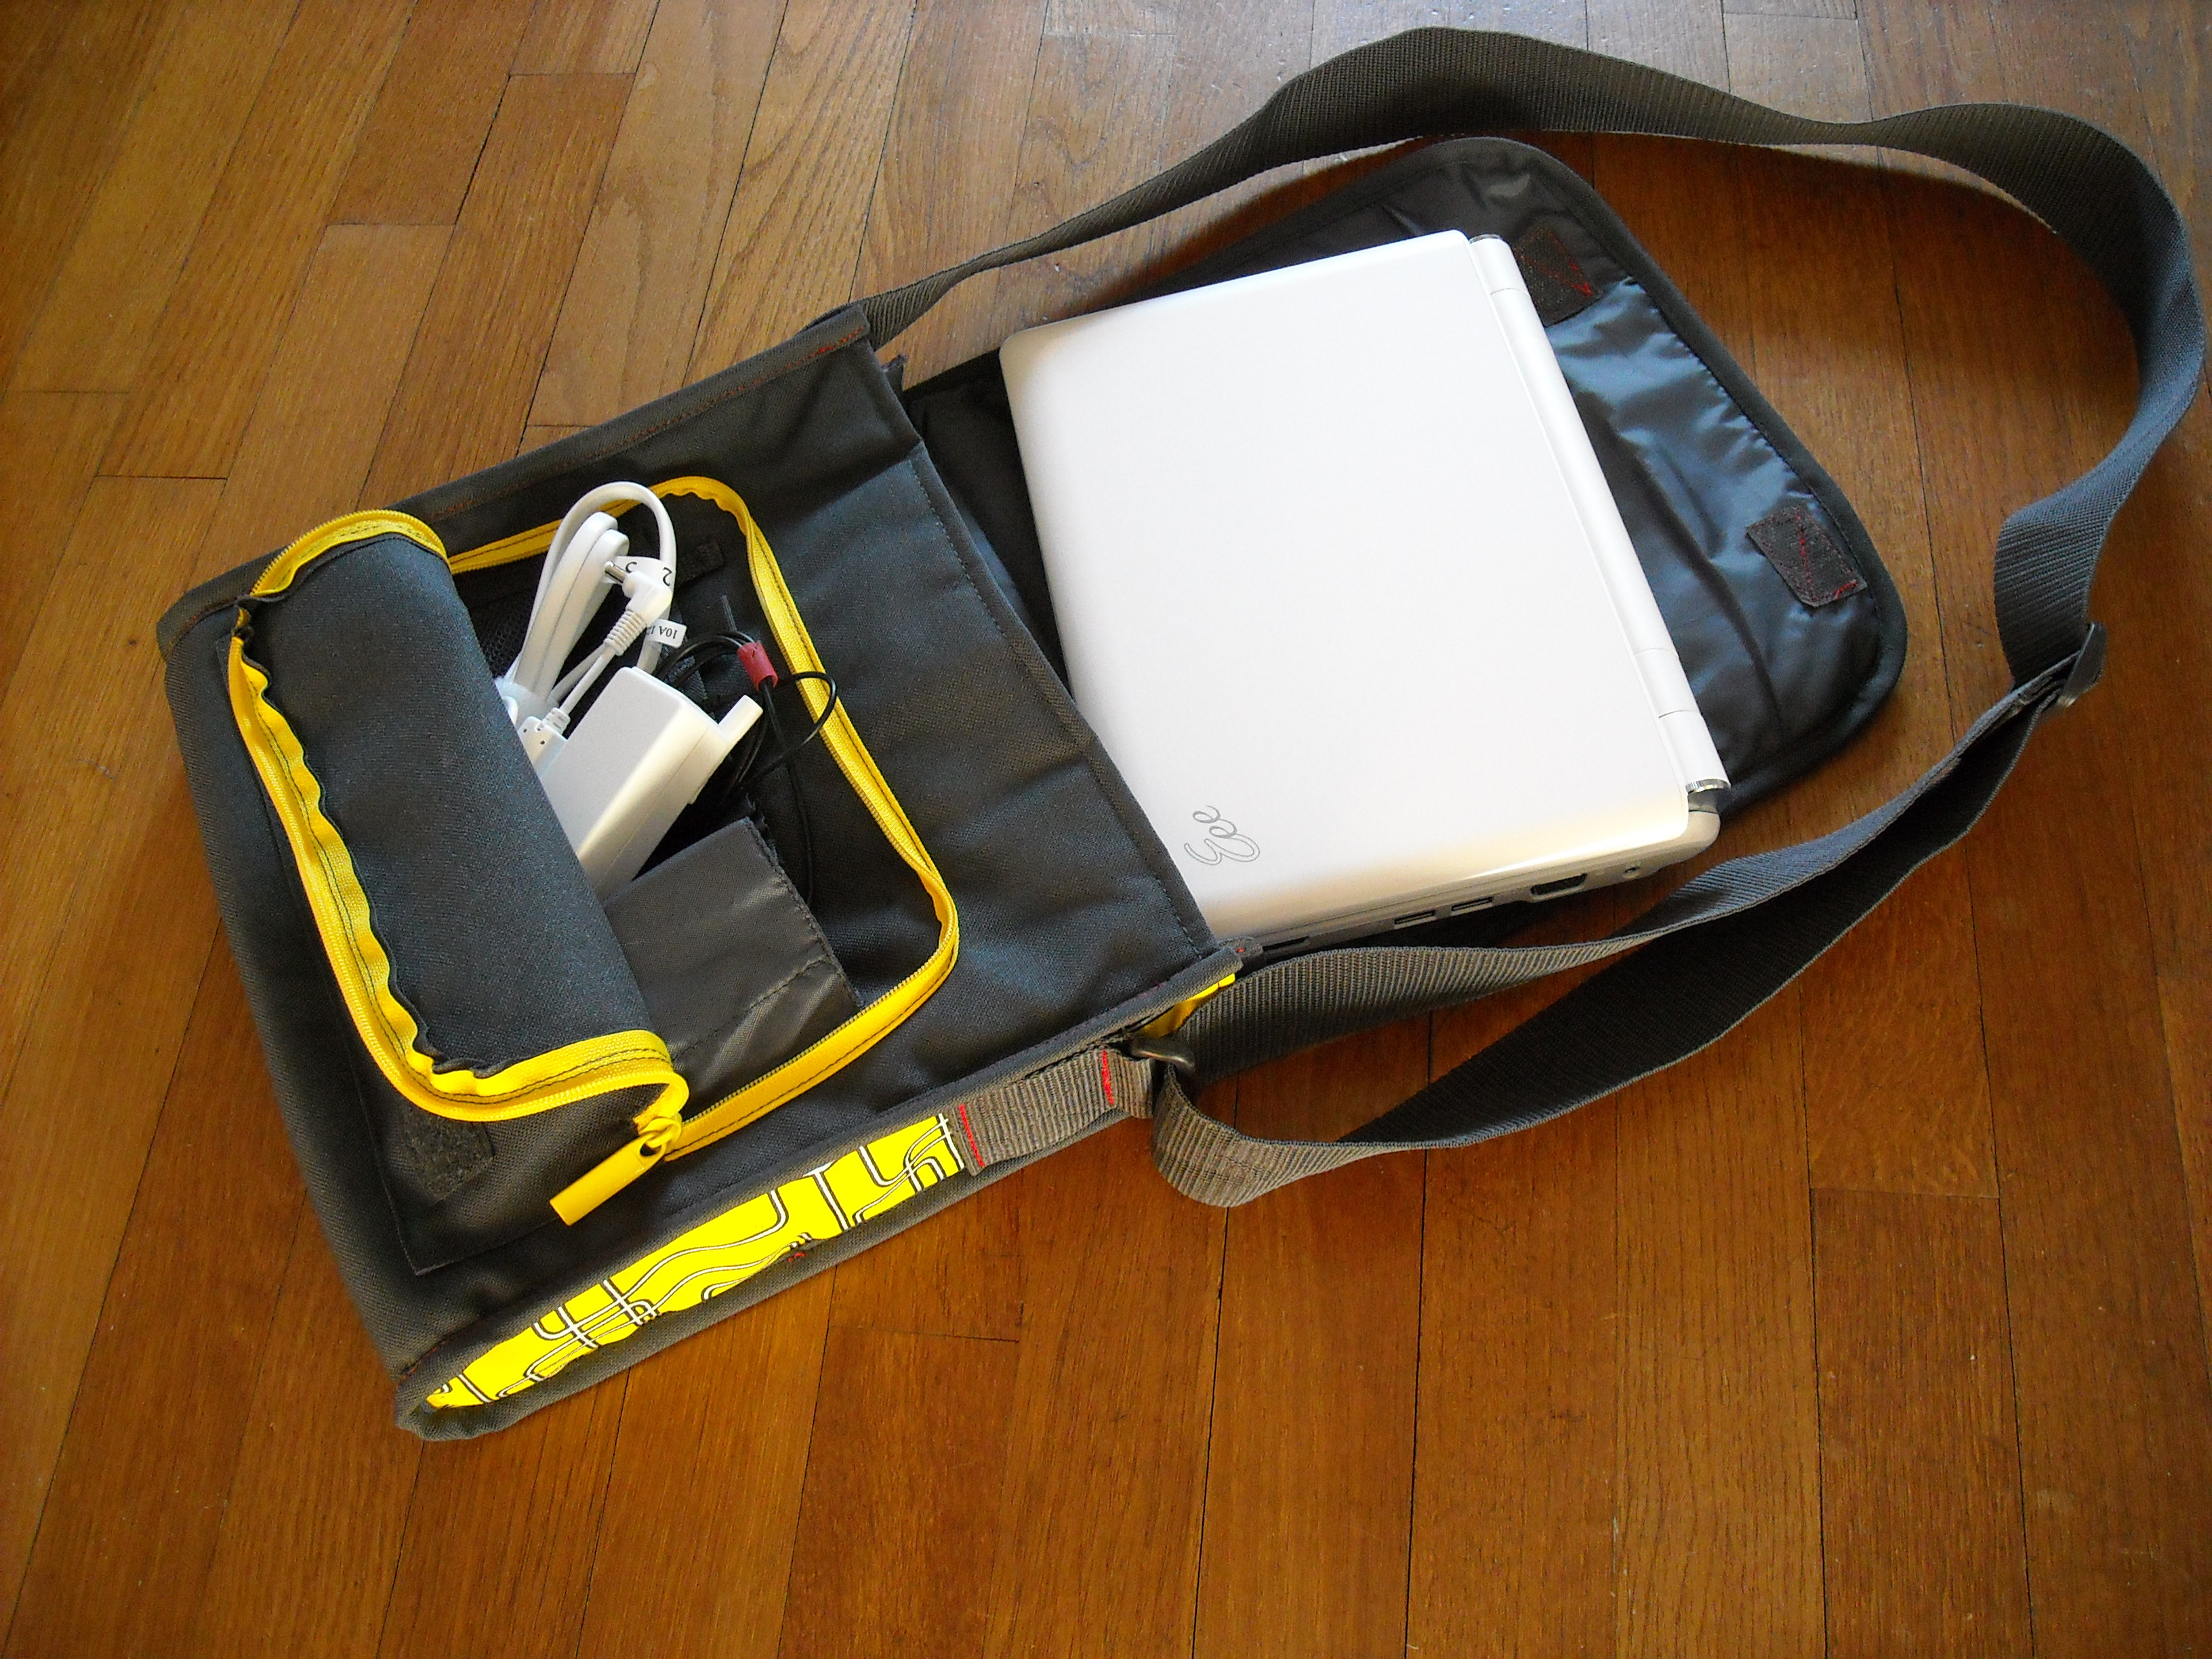 Laptop Bag for your Asus eee pc